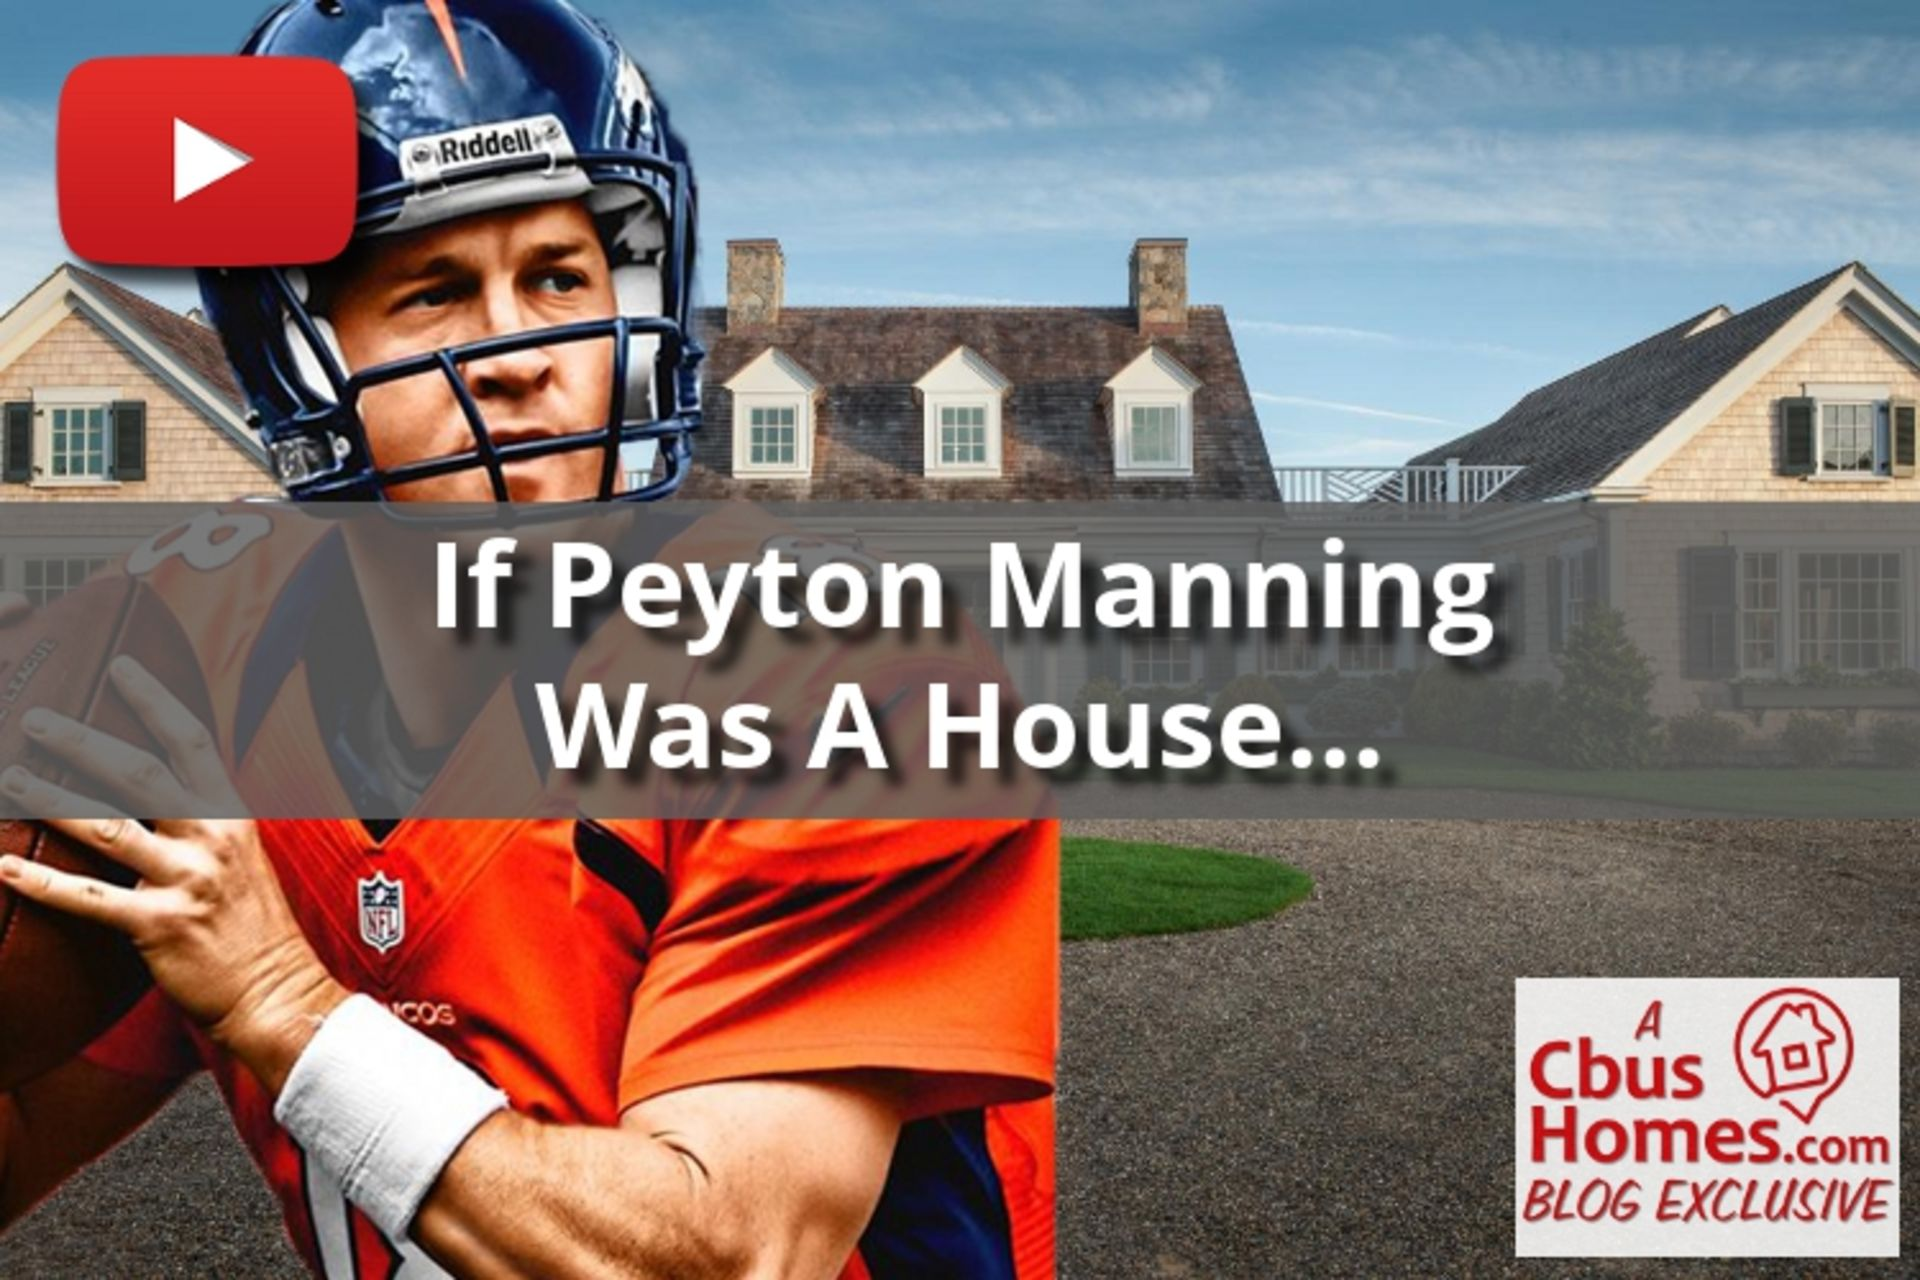 VIDEO: If They Were A House: Peyton Manning Edition